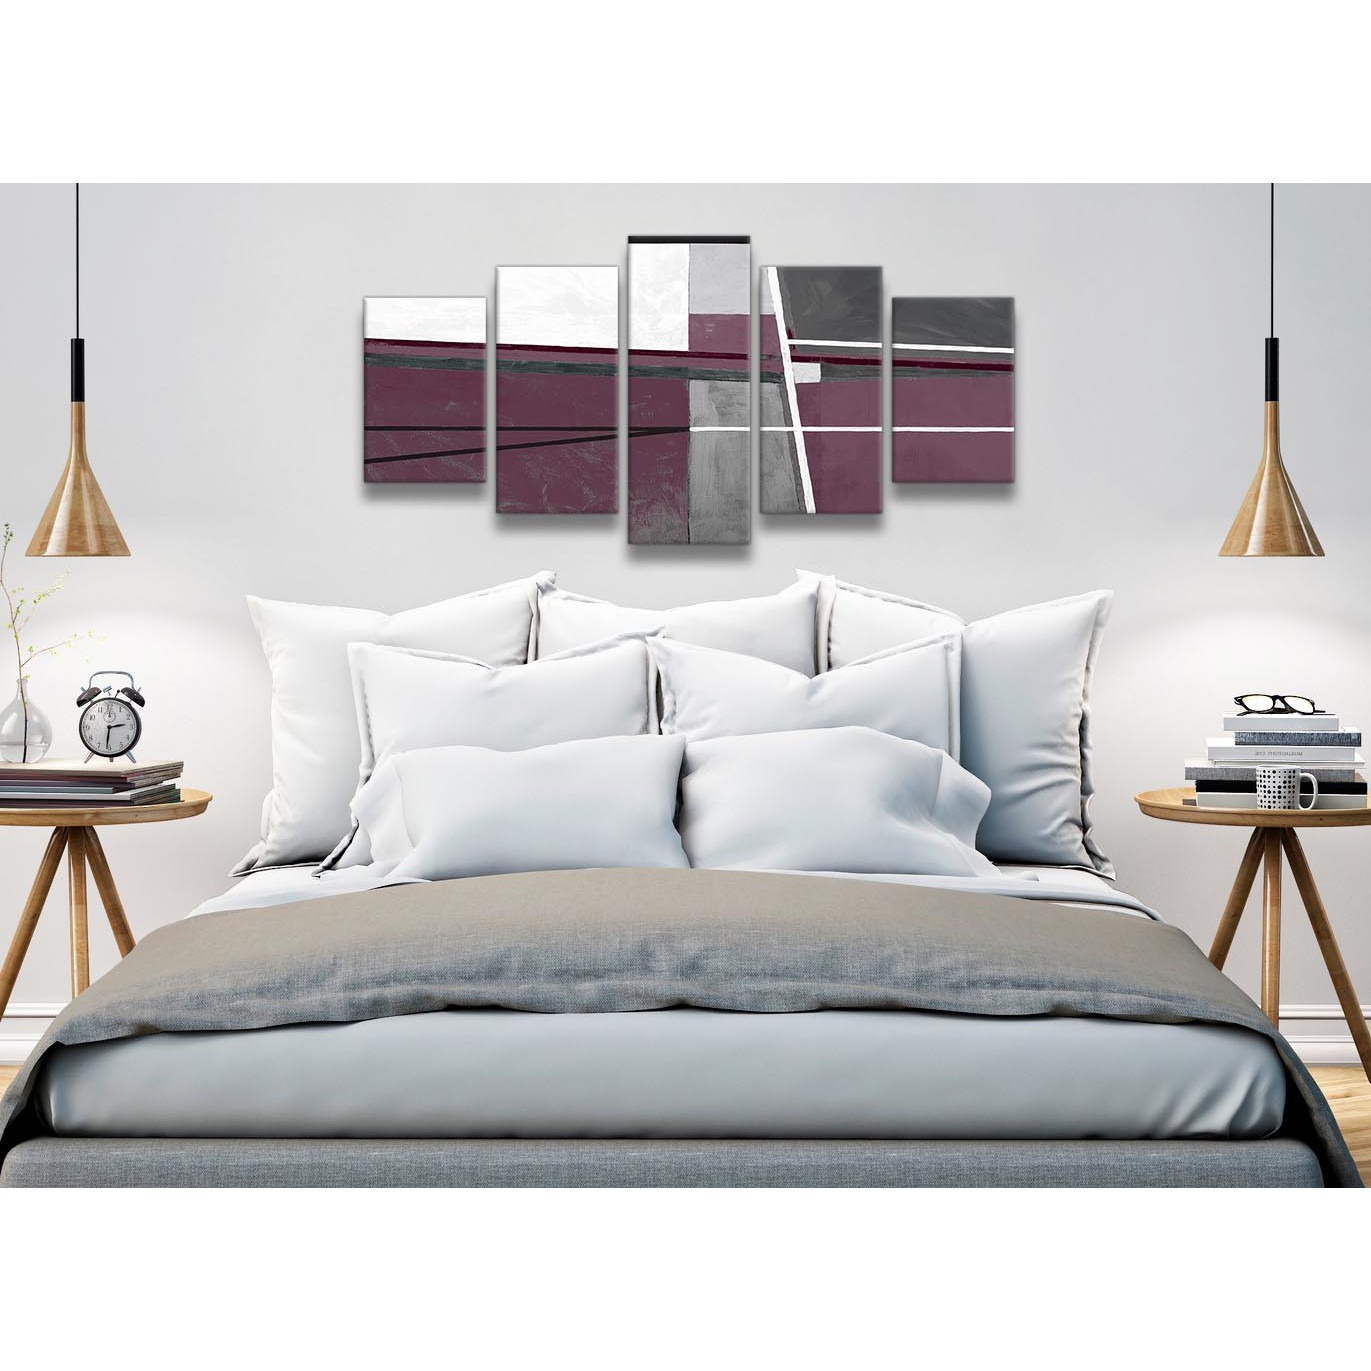 Bedroom Canvas Wall Art Uk: 5 Piece Plum Purple Grey Painting Abstract Dining Room